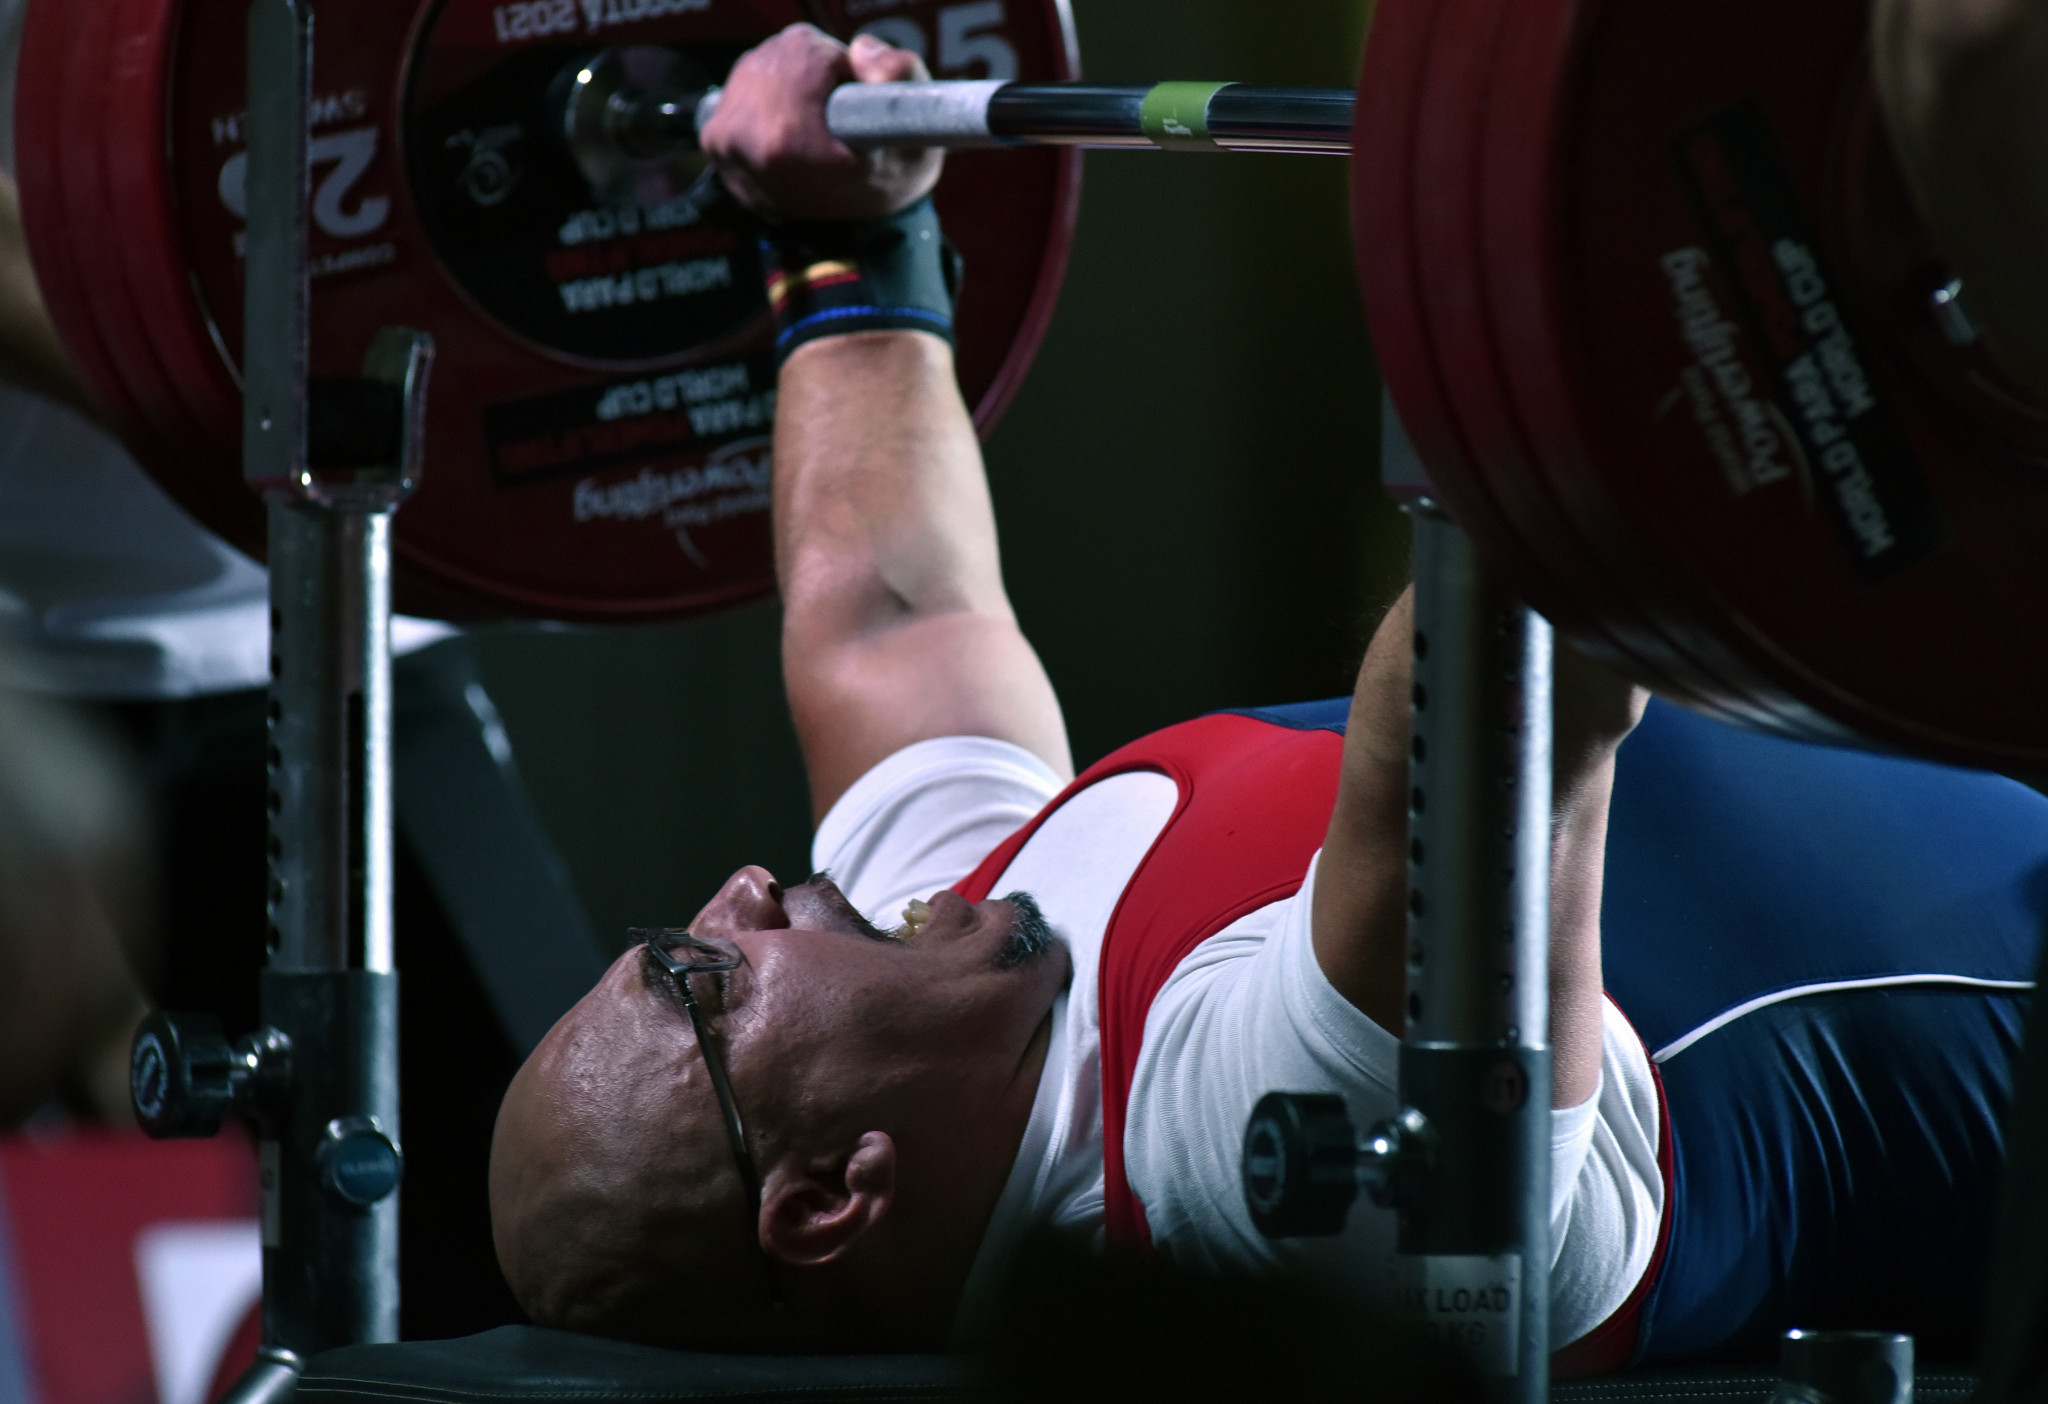 Lima 2019 champion Garrido among World Para Powerlifting World Cup winners